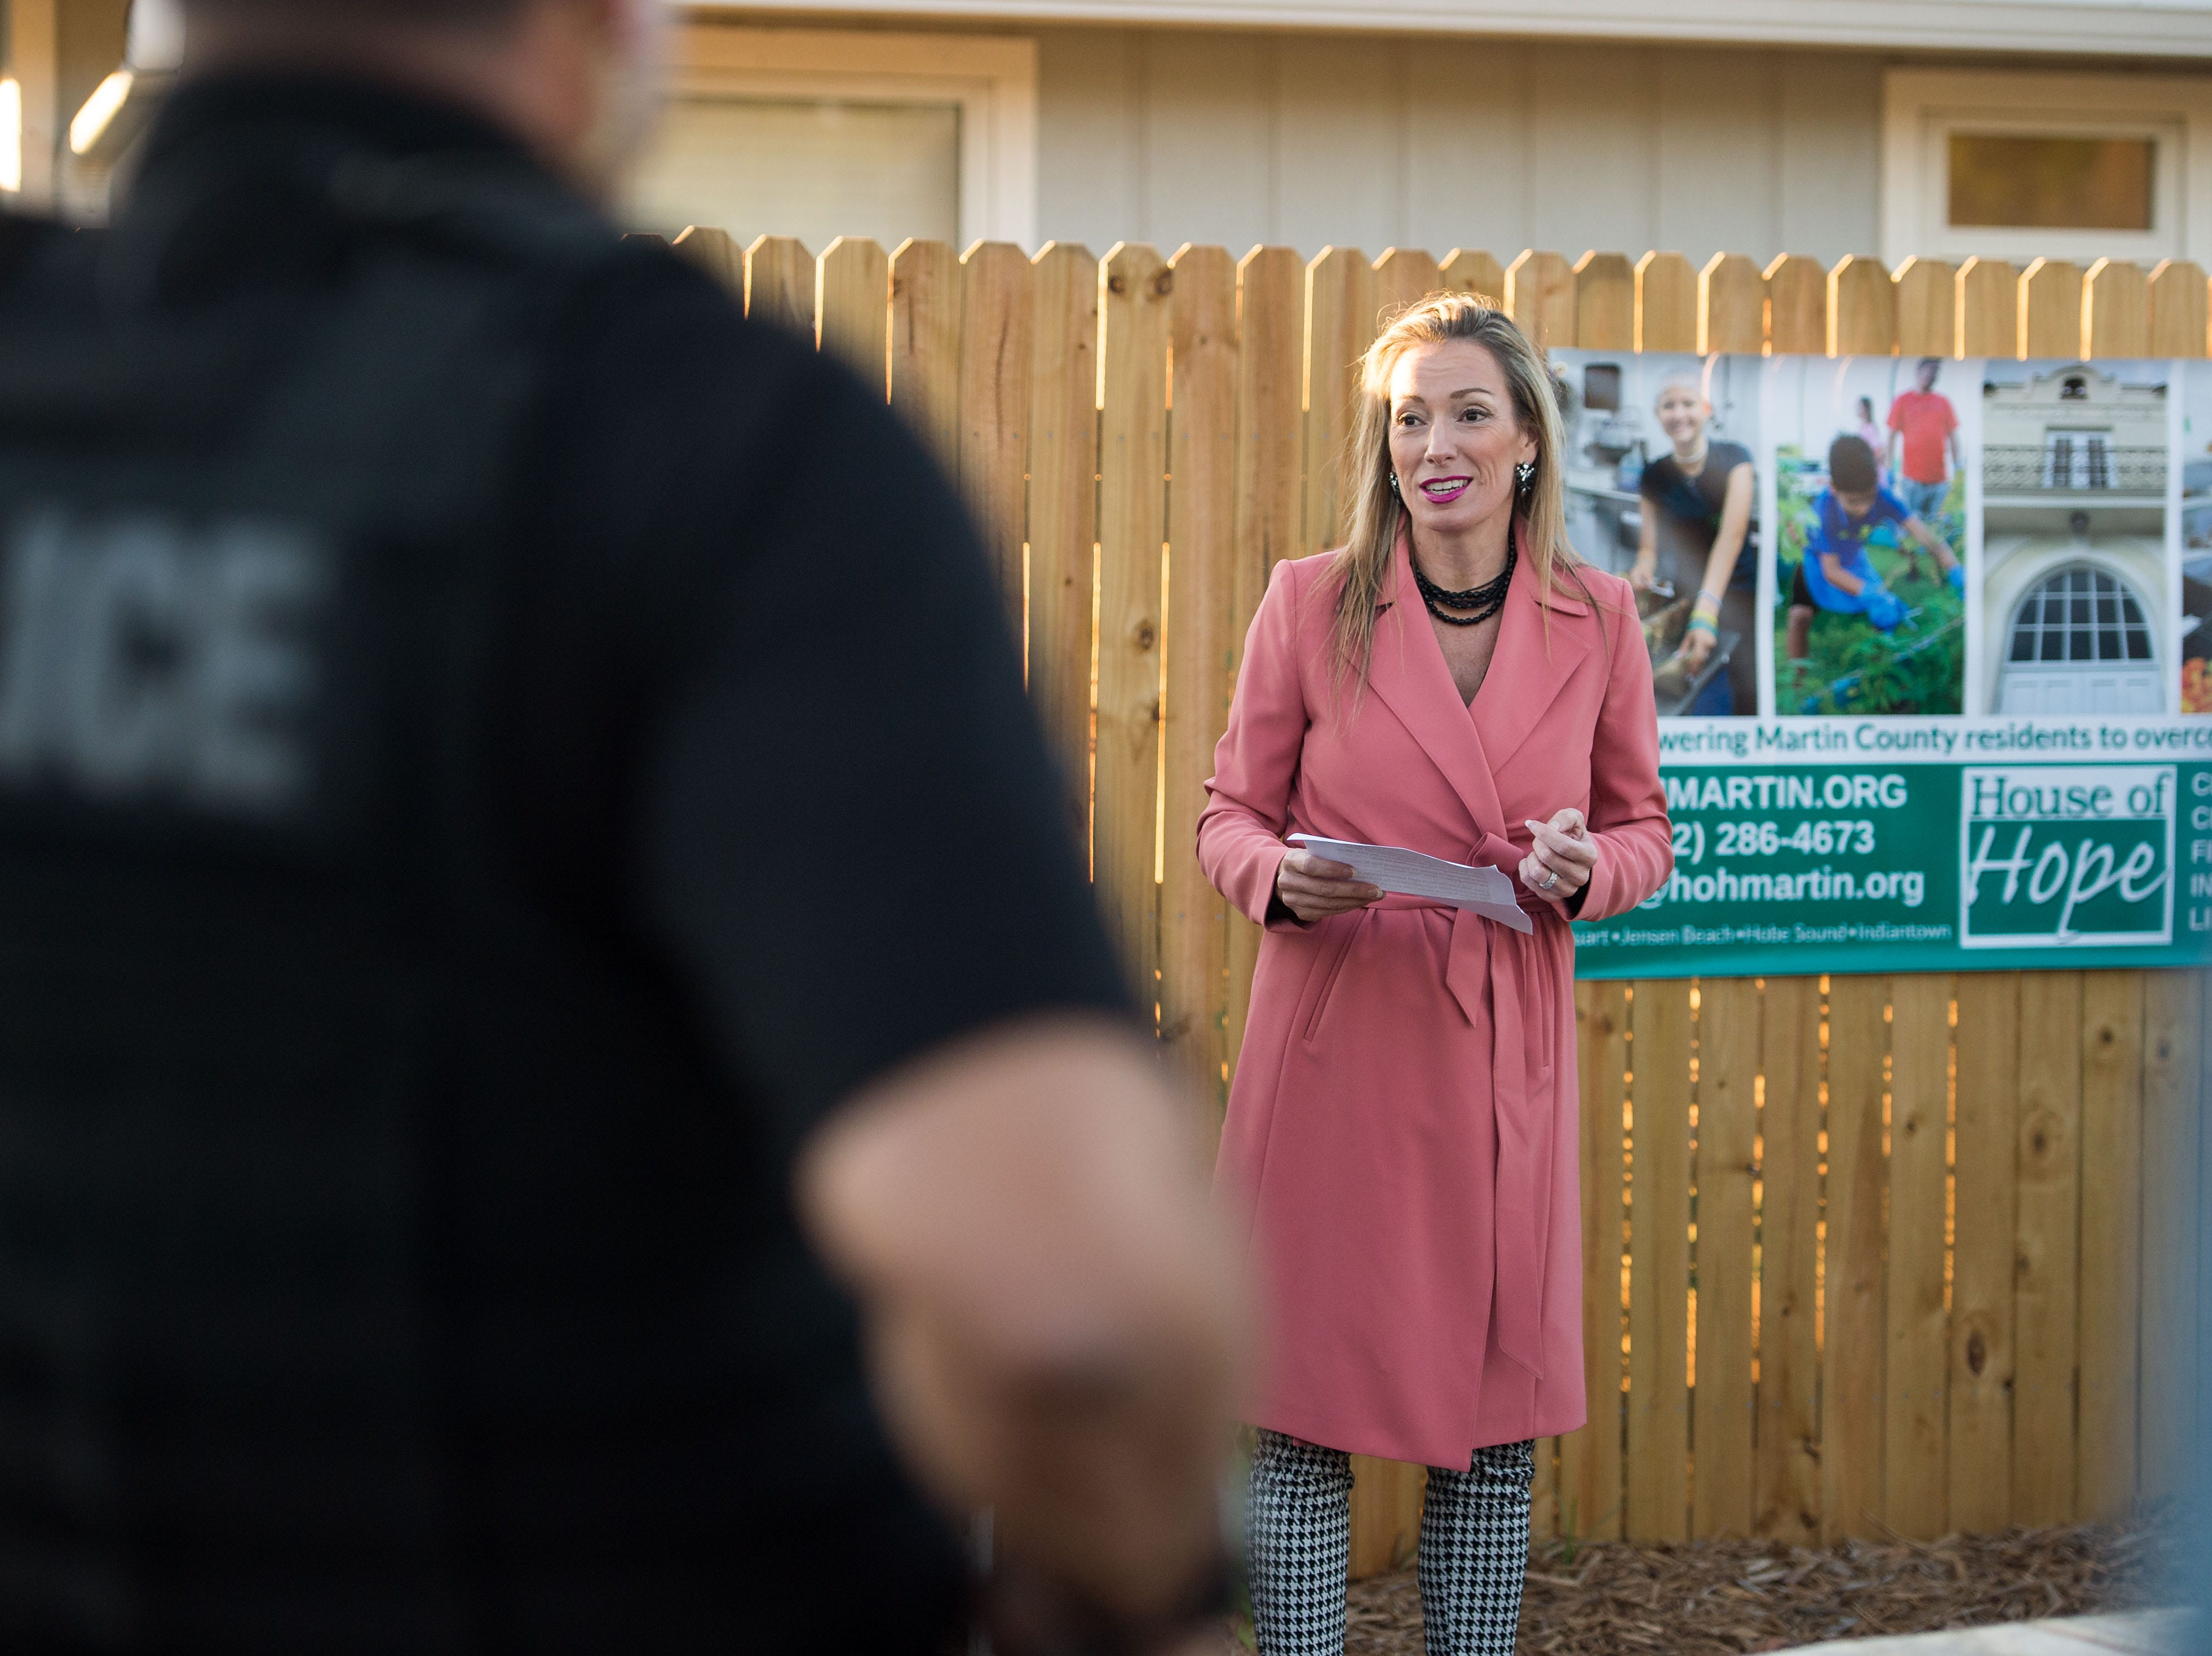 The House of Hope, City of Stuart Commissioners and the local neighborhood celebrate the official ribbon cutting for the new East Stuart Community Garden on Tuesday, Nov. 27, 2018, in Stuart. The collaborative garden site will offer educational opportunities for gardening and better nutrition, as well as help supply local pantries and soup kitchens with fresh produce.